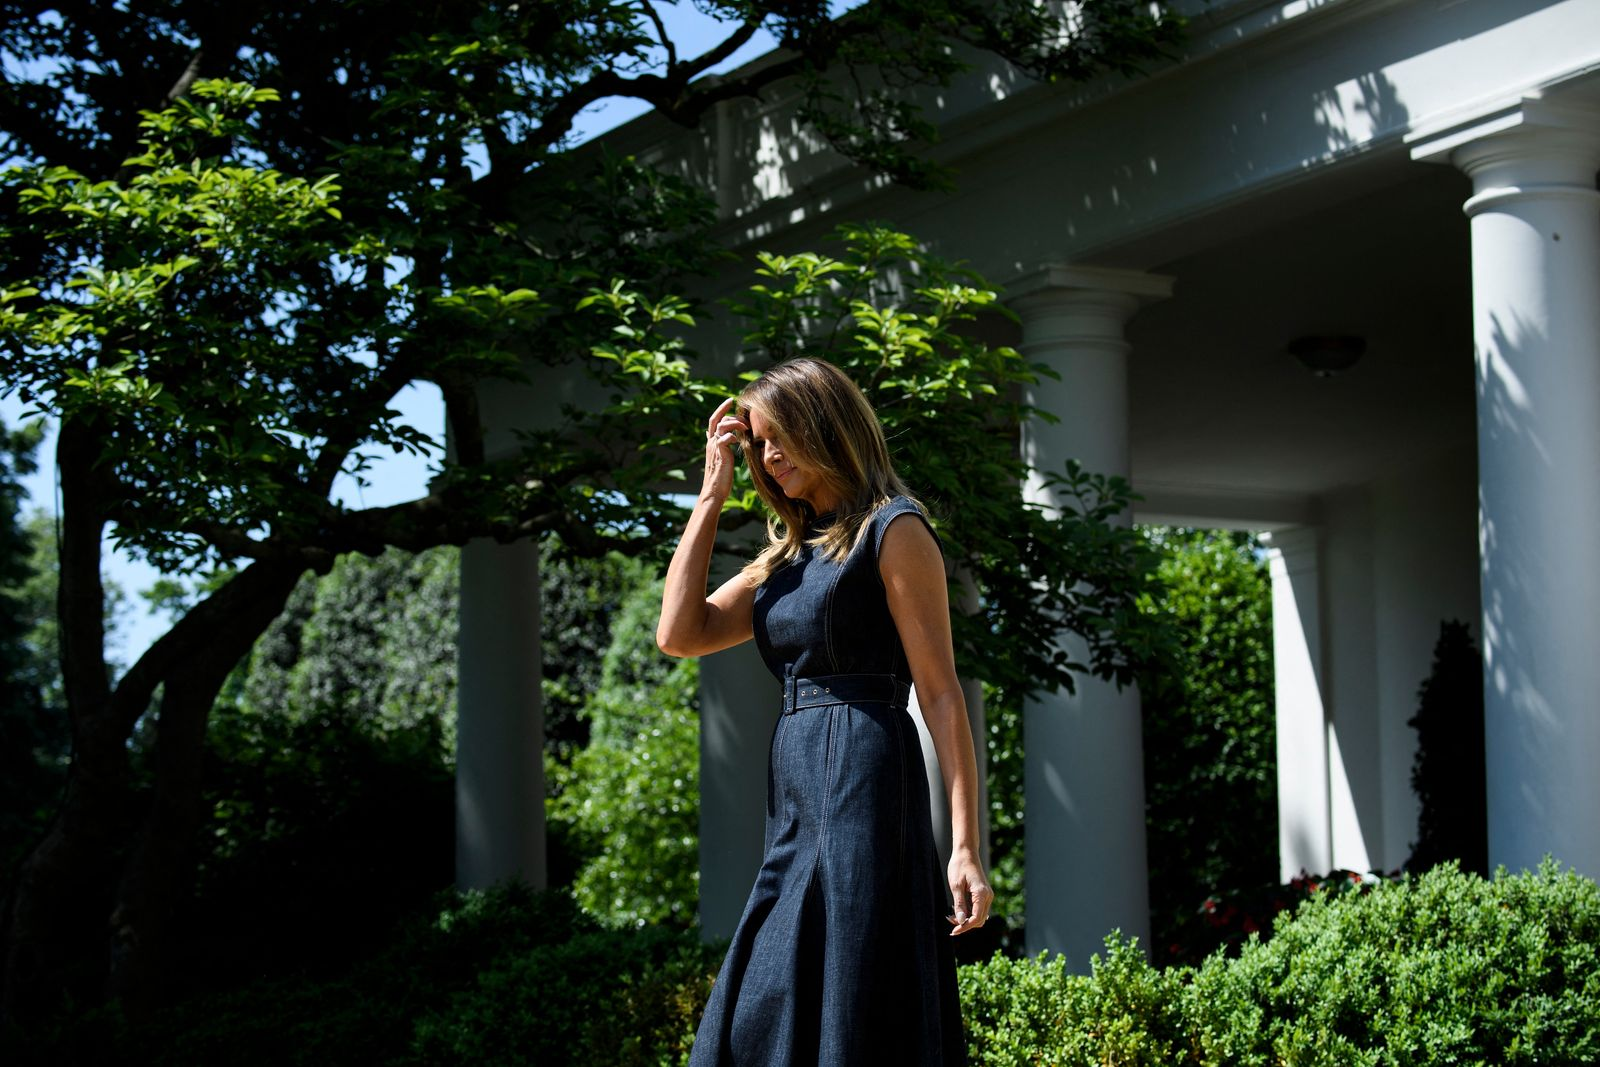 US First Lady Melania Trump hosts a celebration for the anniversary of her 'Be Best' initiative